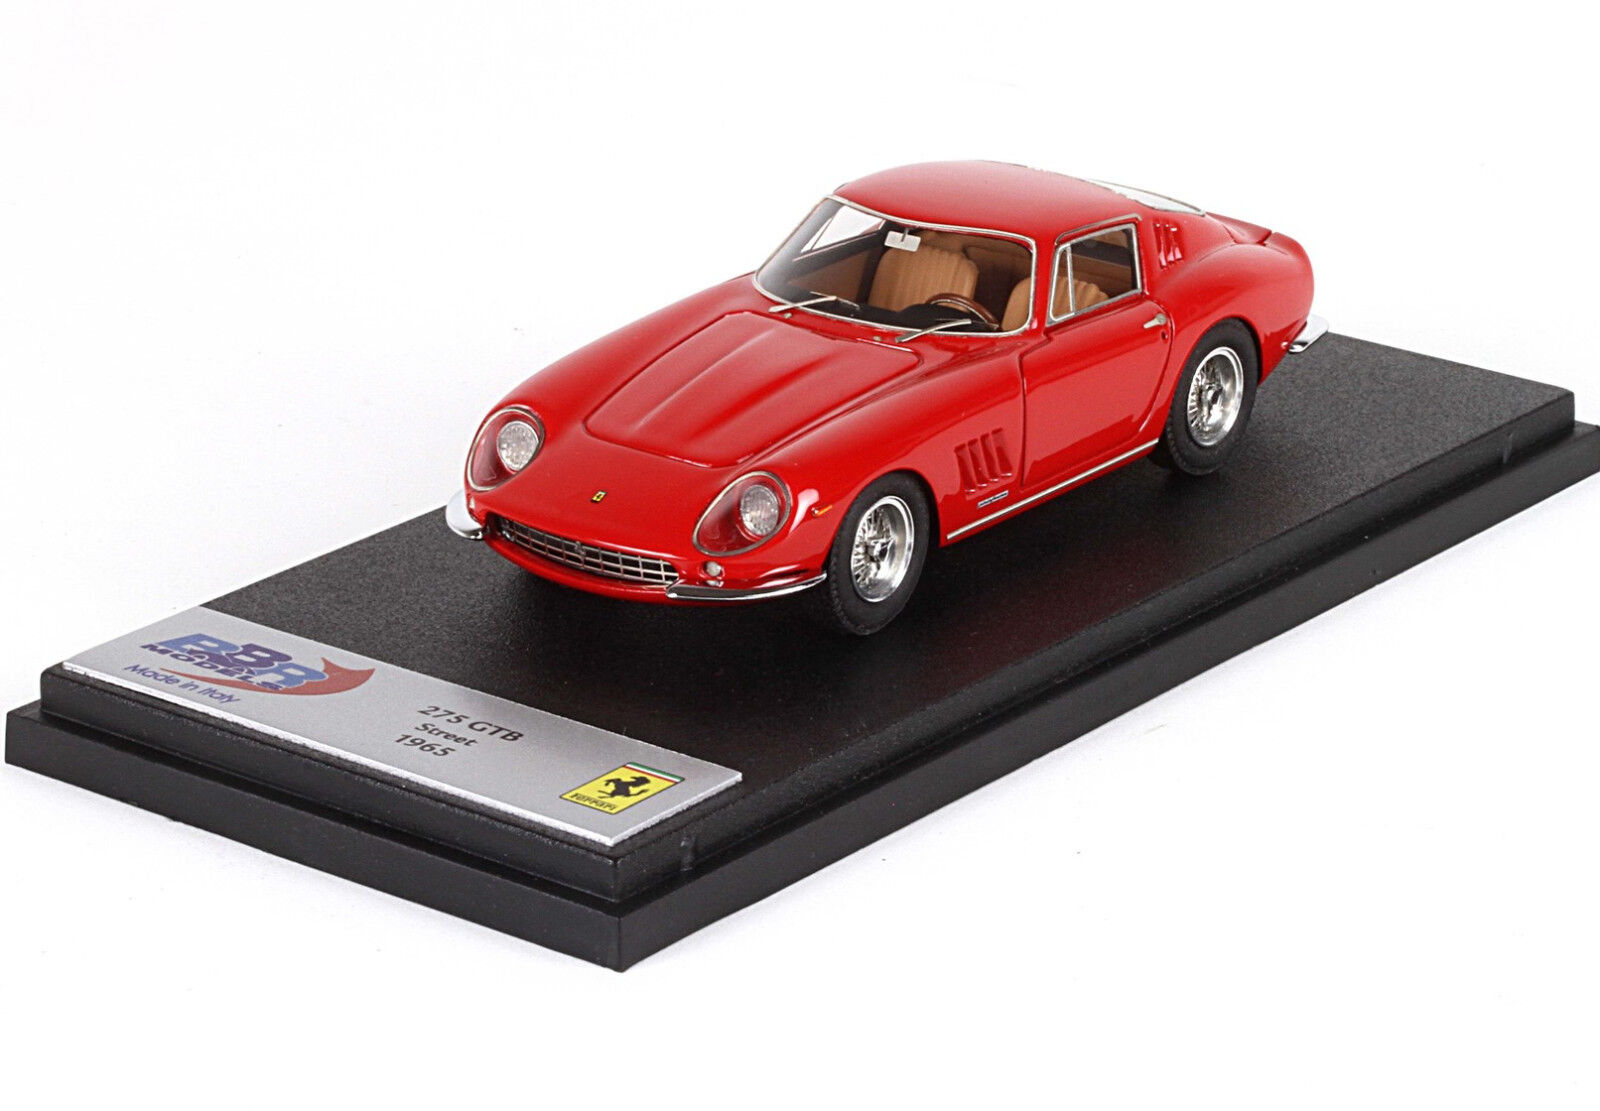 Ferrari 275 GTB Red 1965 1/43 Made in Italy Italy Italy  BBR60A BBR Models | Larges Variétés  142112